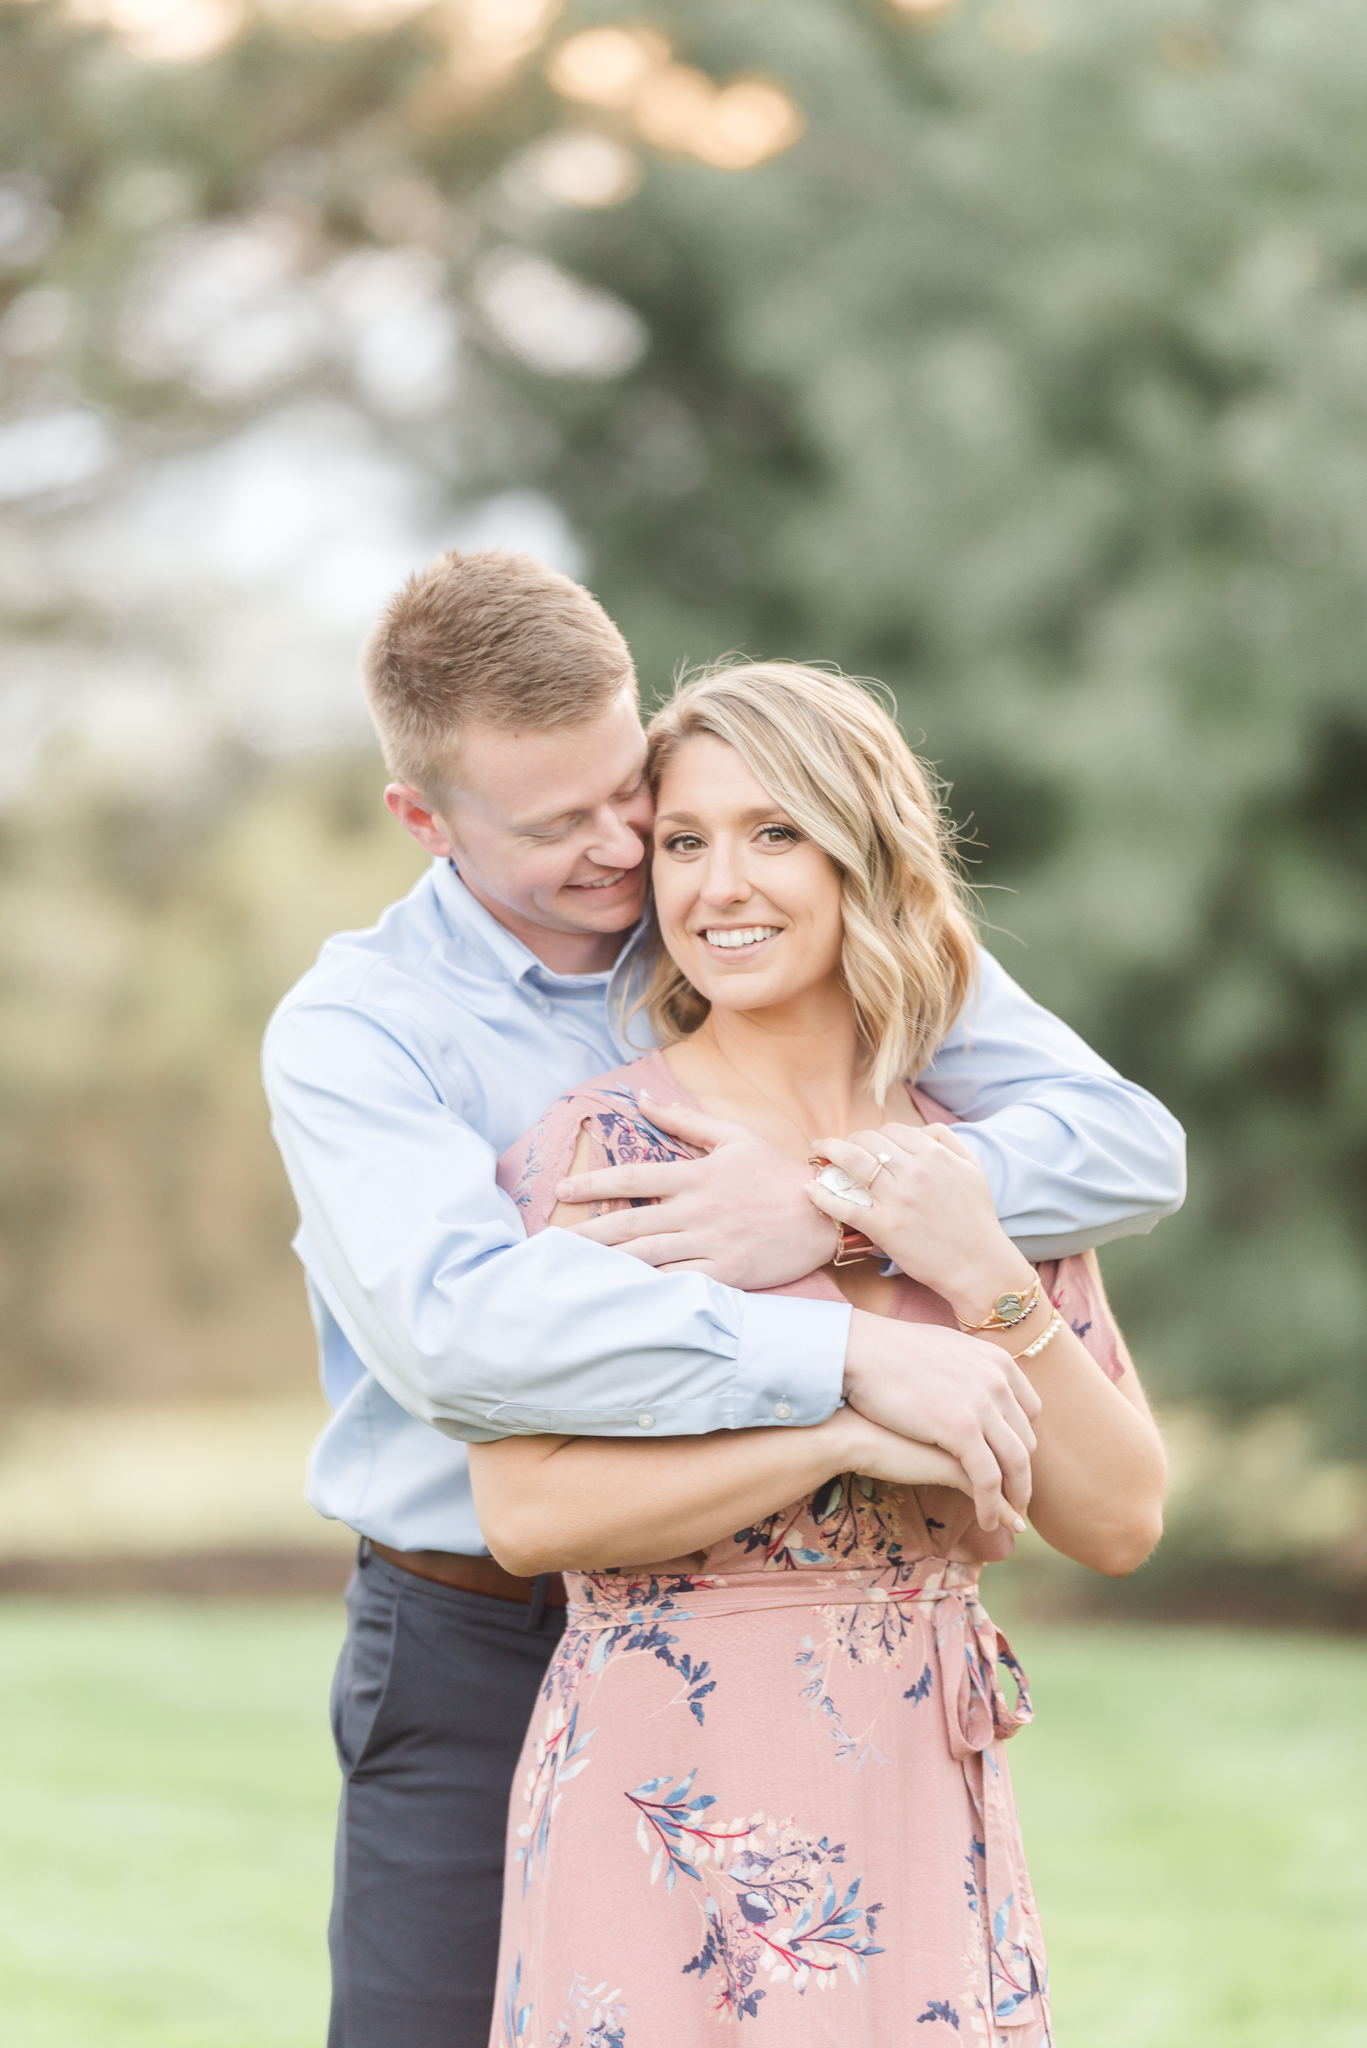 Richie Woods Nature Preserve and Mustard Seed Gardens Engagement Session Wedding Photos-55.jpg